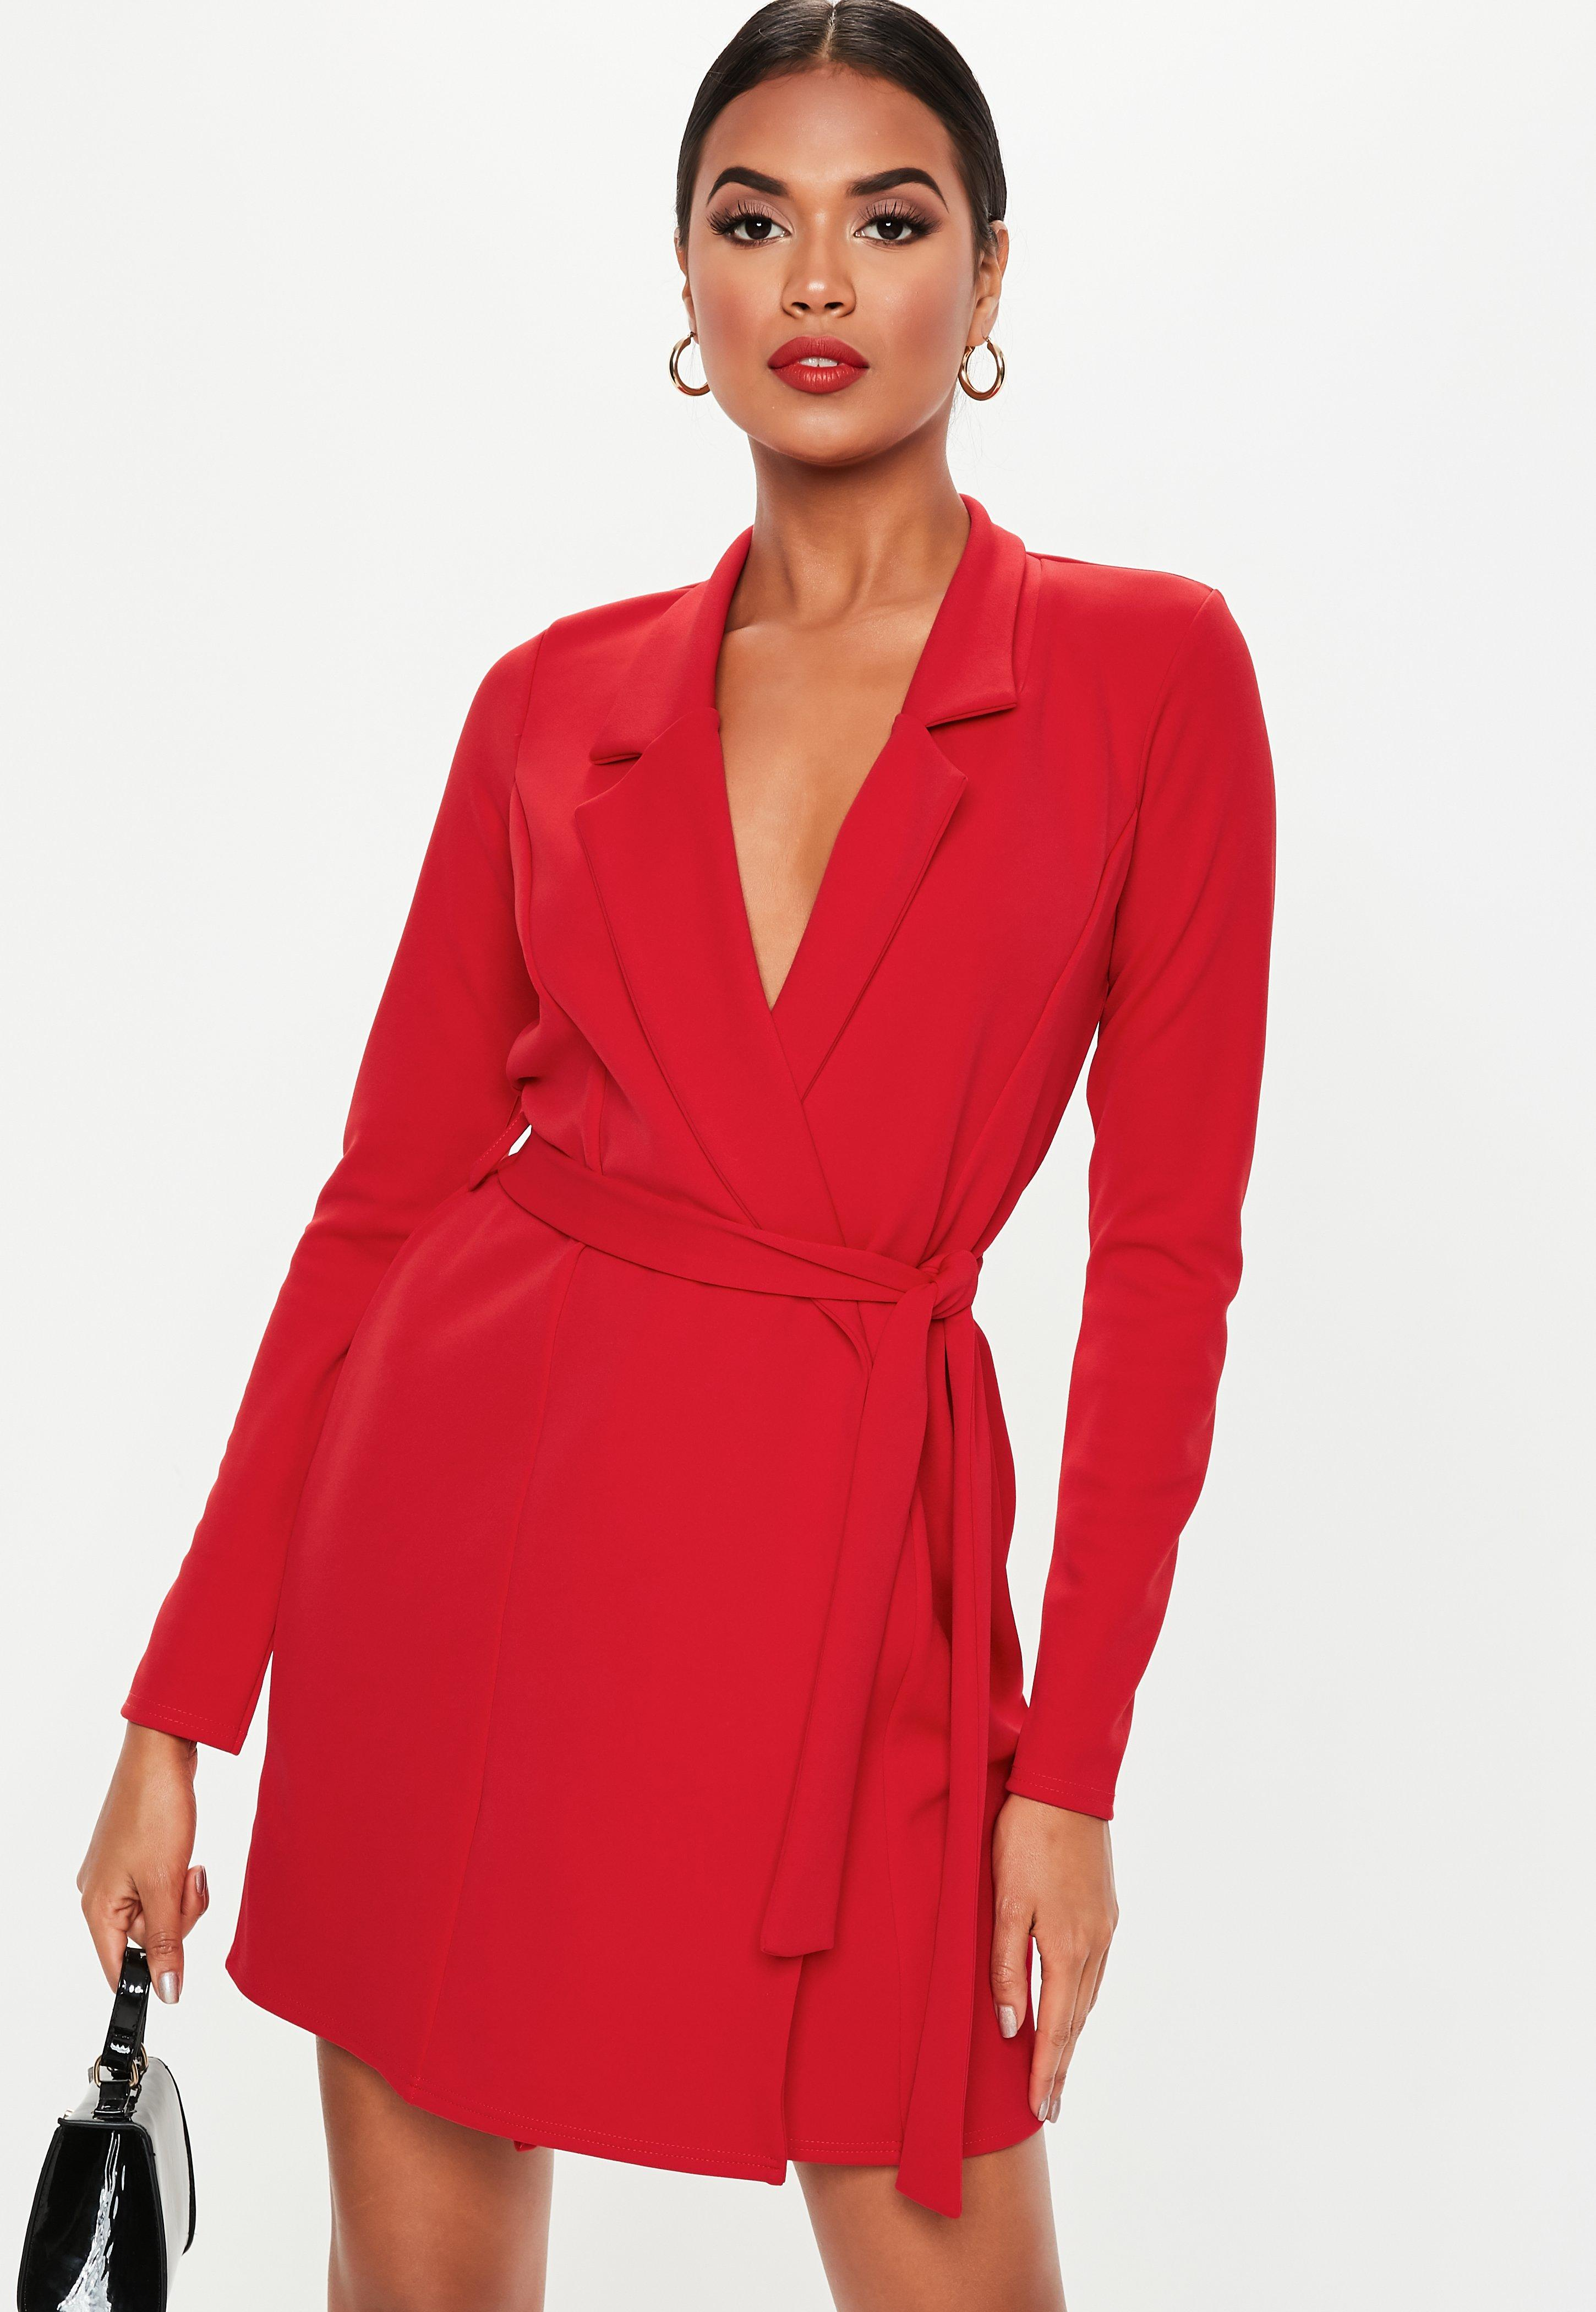 MISSGUIDED – ROBE ROUGE BLAZER A CEINTURE